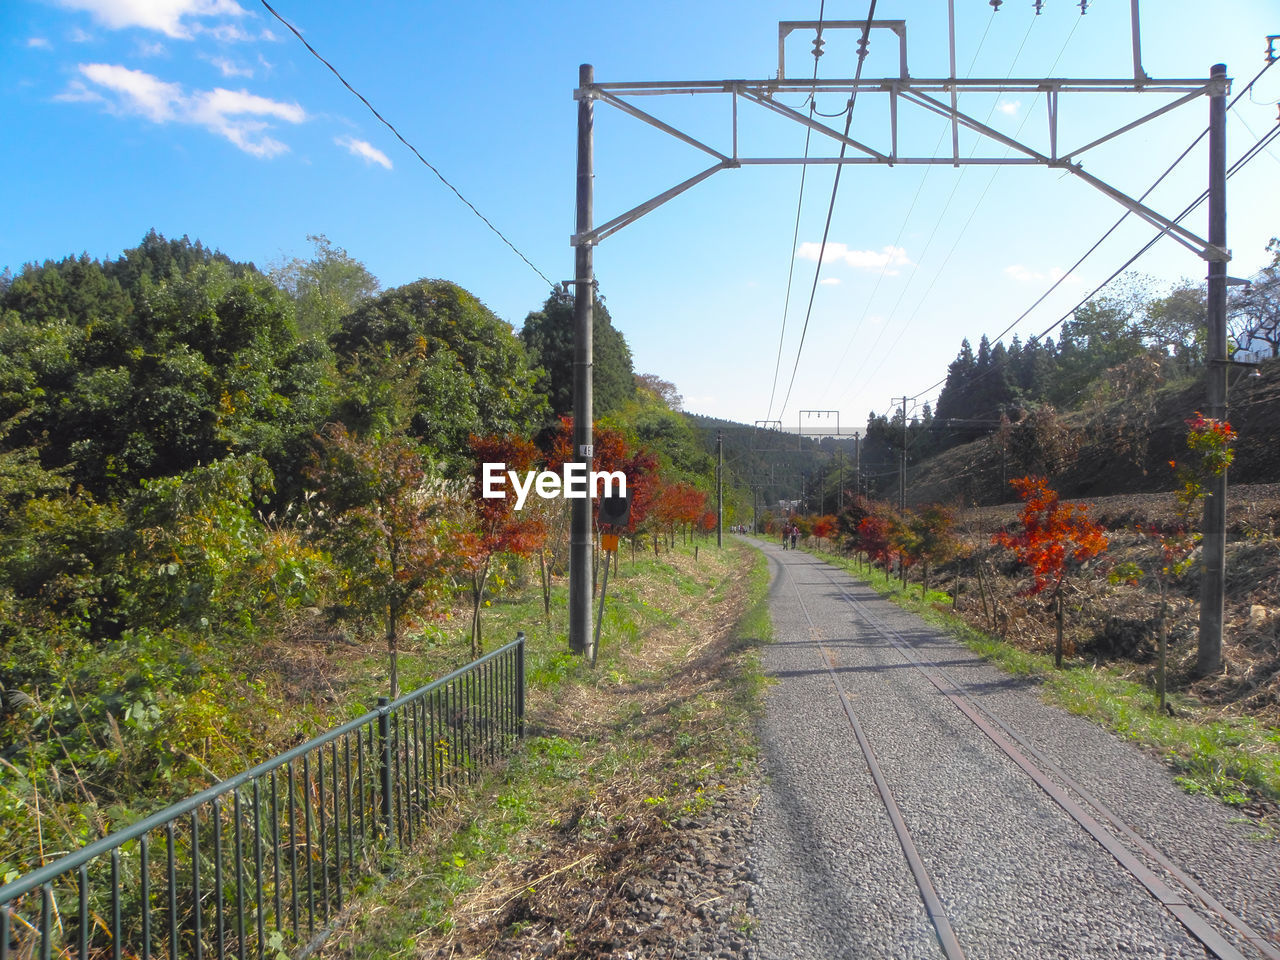 Railroad track by trees against sky